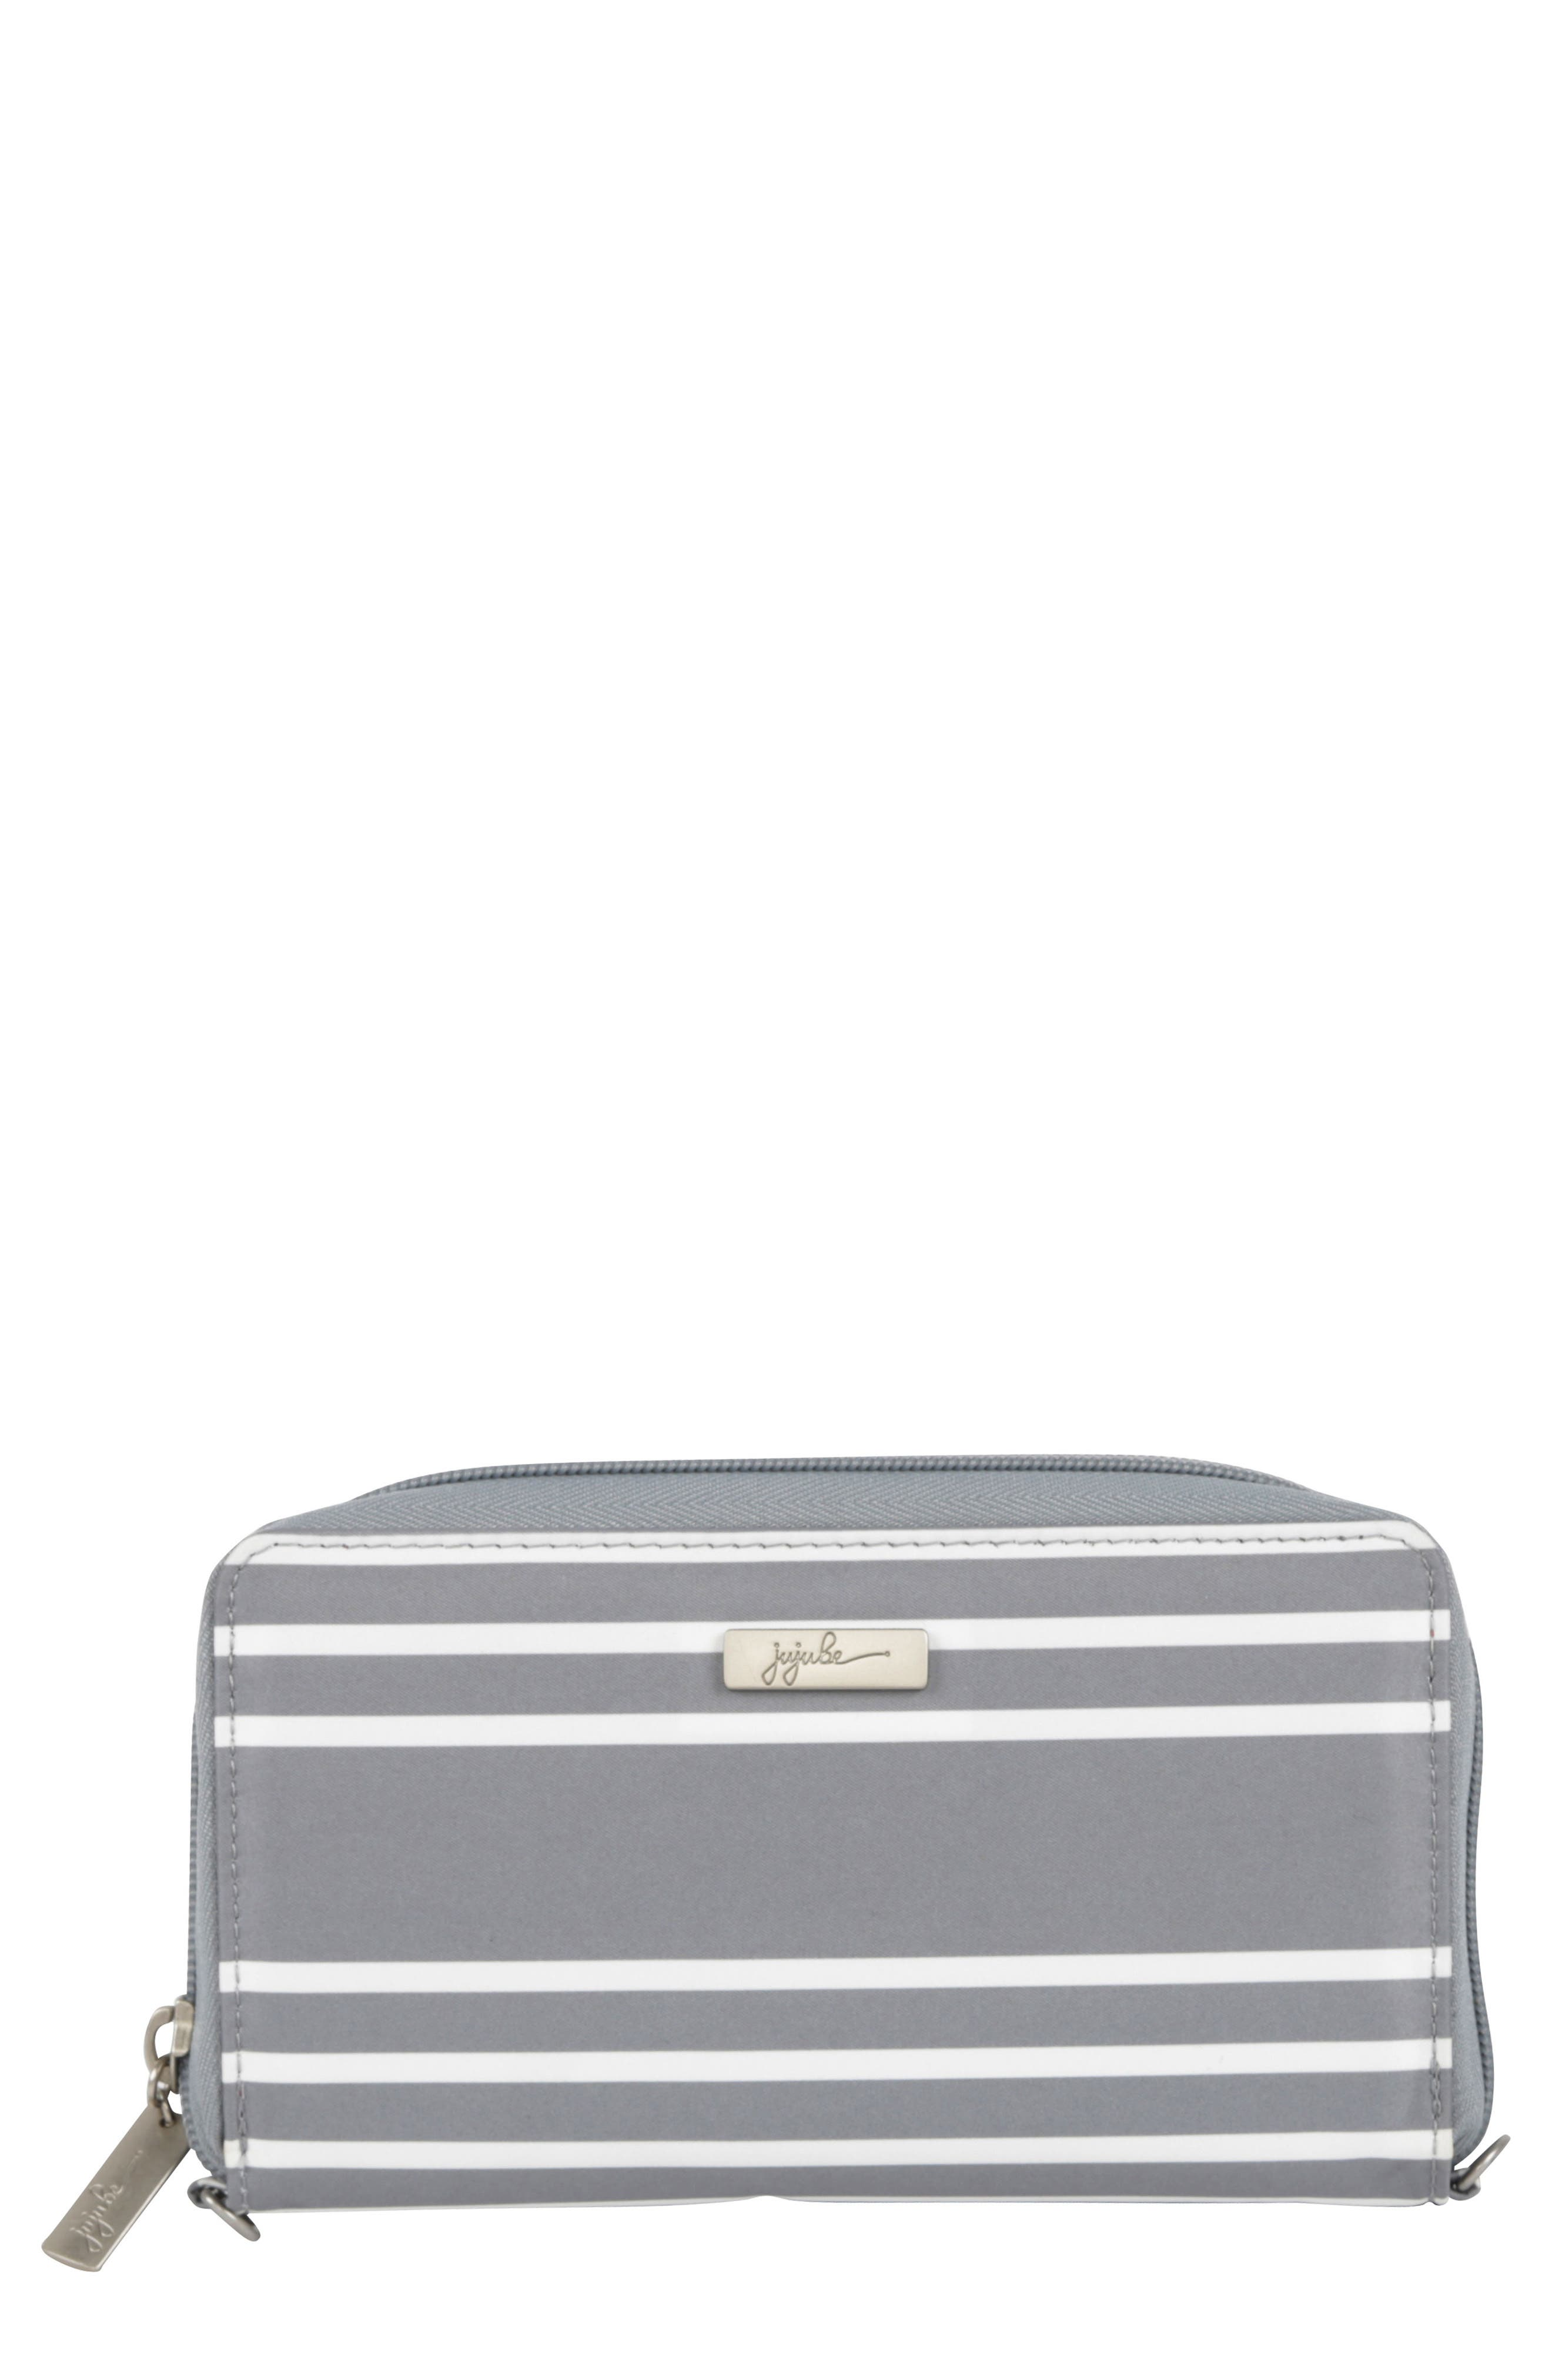 Be Spendy - Coastal Collection Clutch Wallet,                             Main thumbnail 1, color,                             042